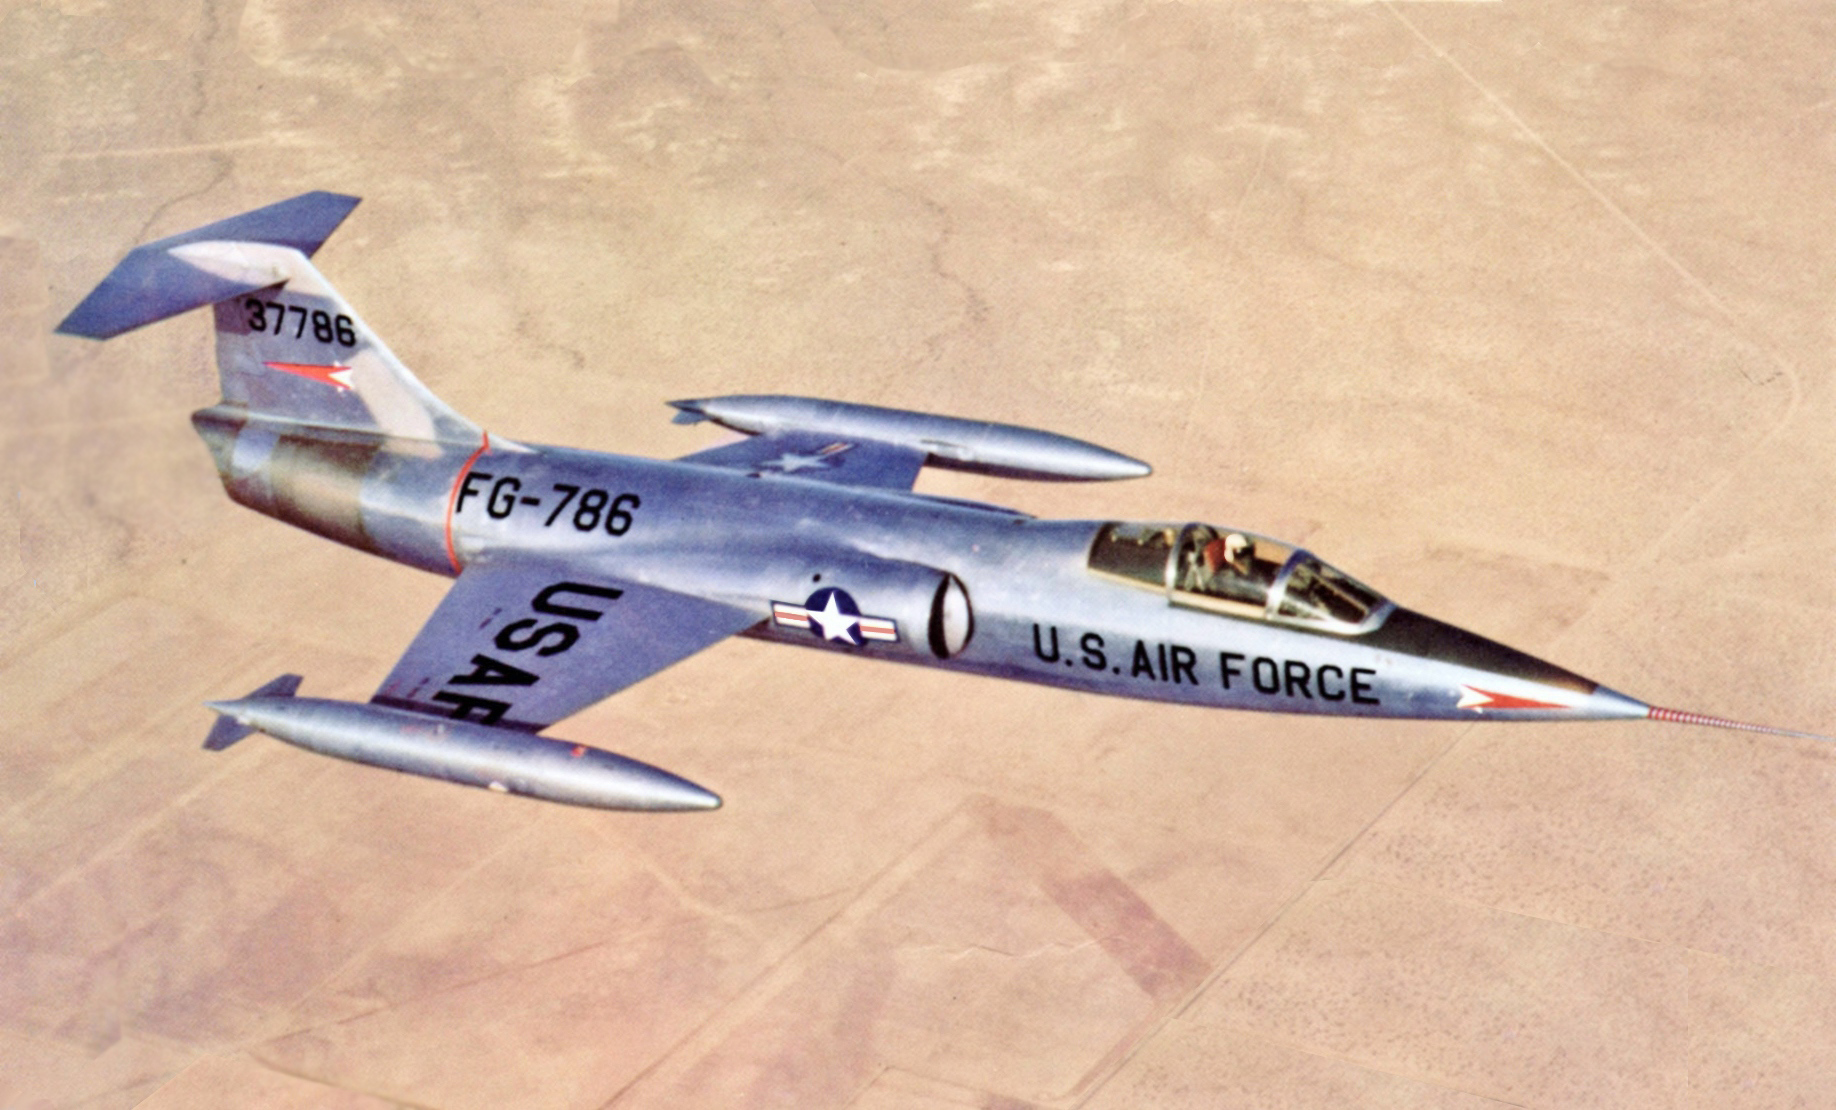 https://upload.wikimedia.org/wikipedia/commons/d/de/Lockheed_XF-104_%28modified%29.jpg